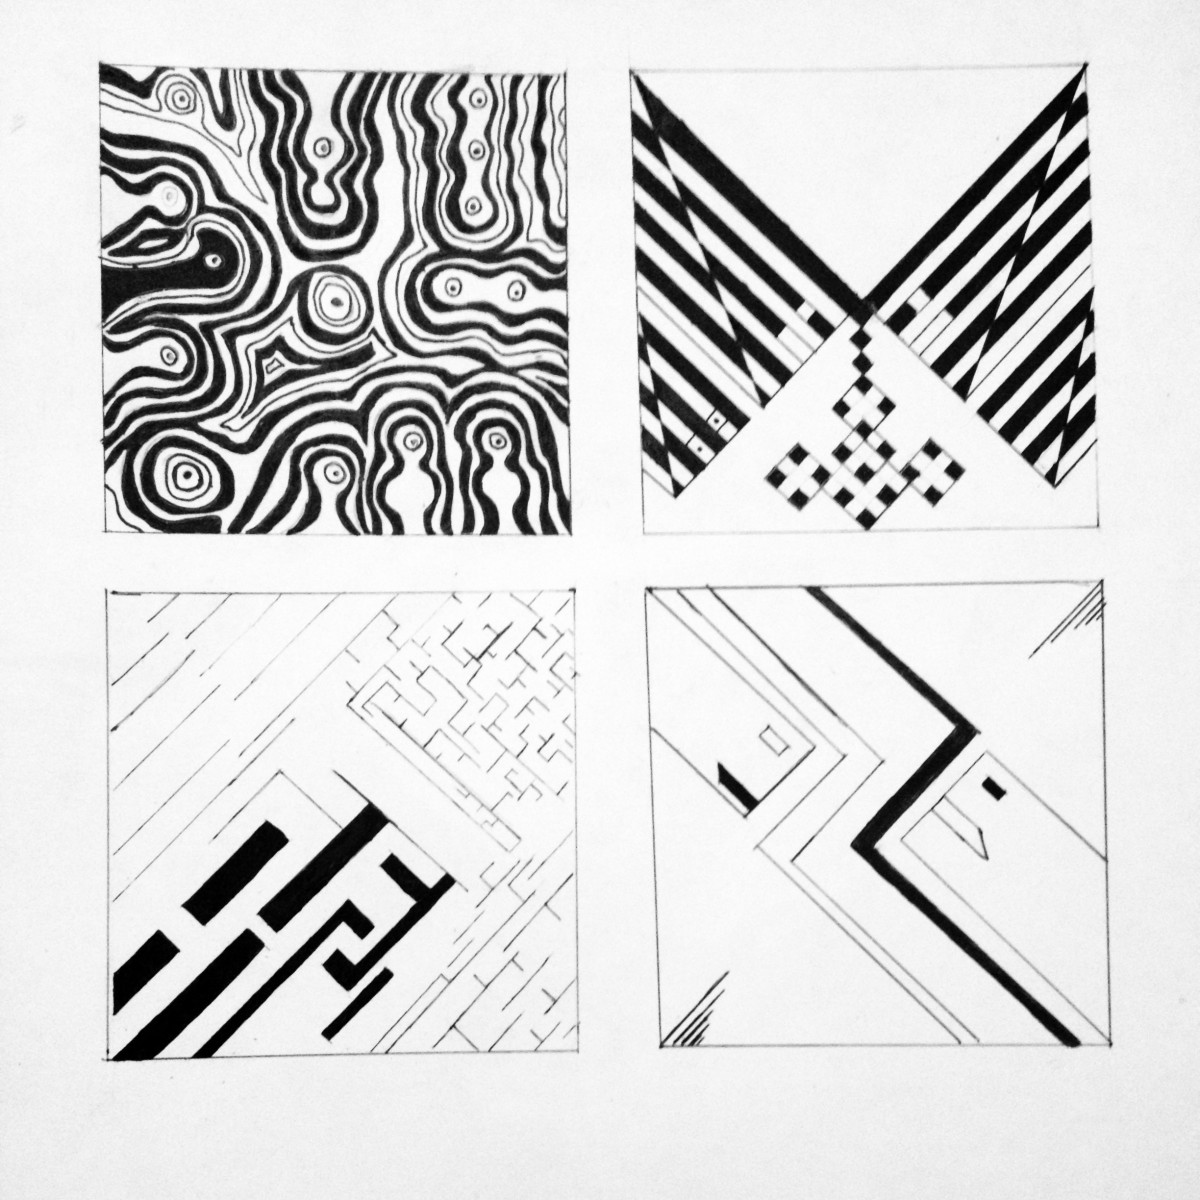 1200x1200 Uses Of Line And Curves Focus On The Title Graphic Principles 1